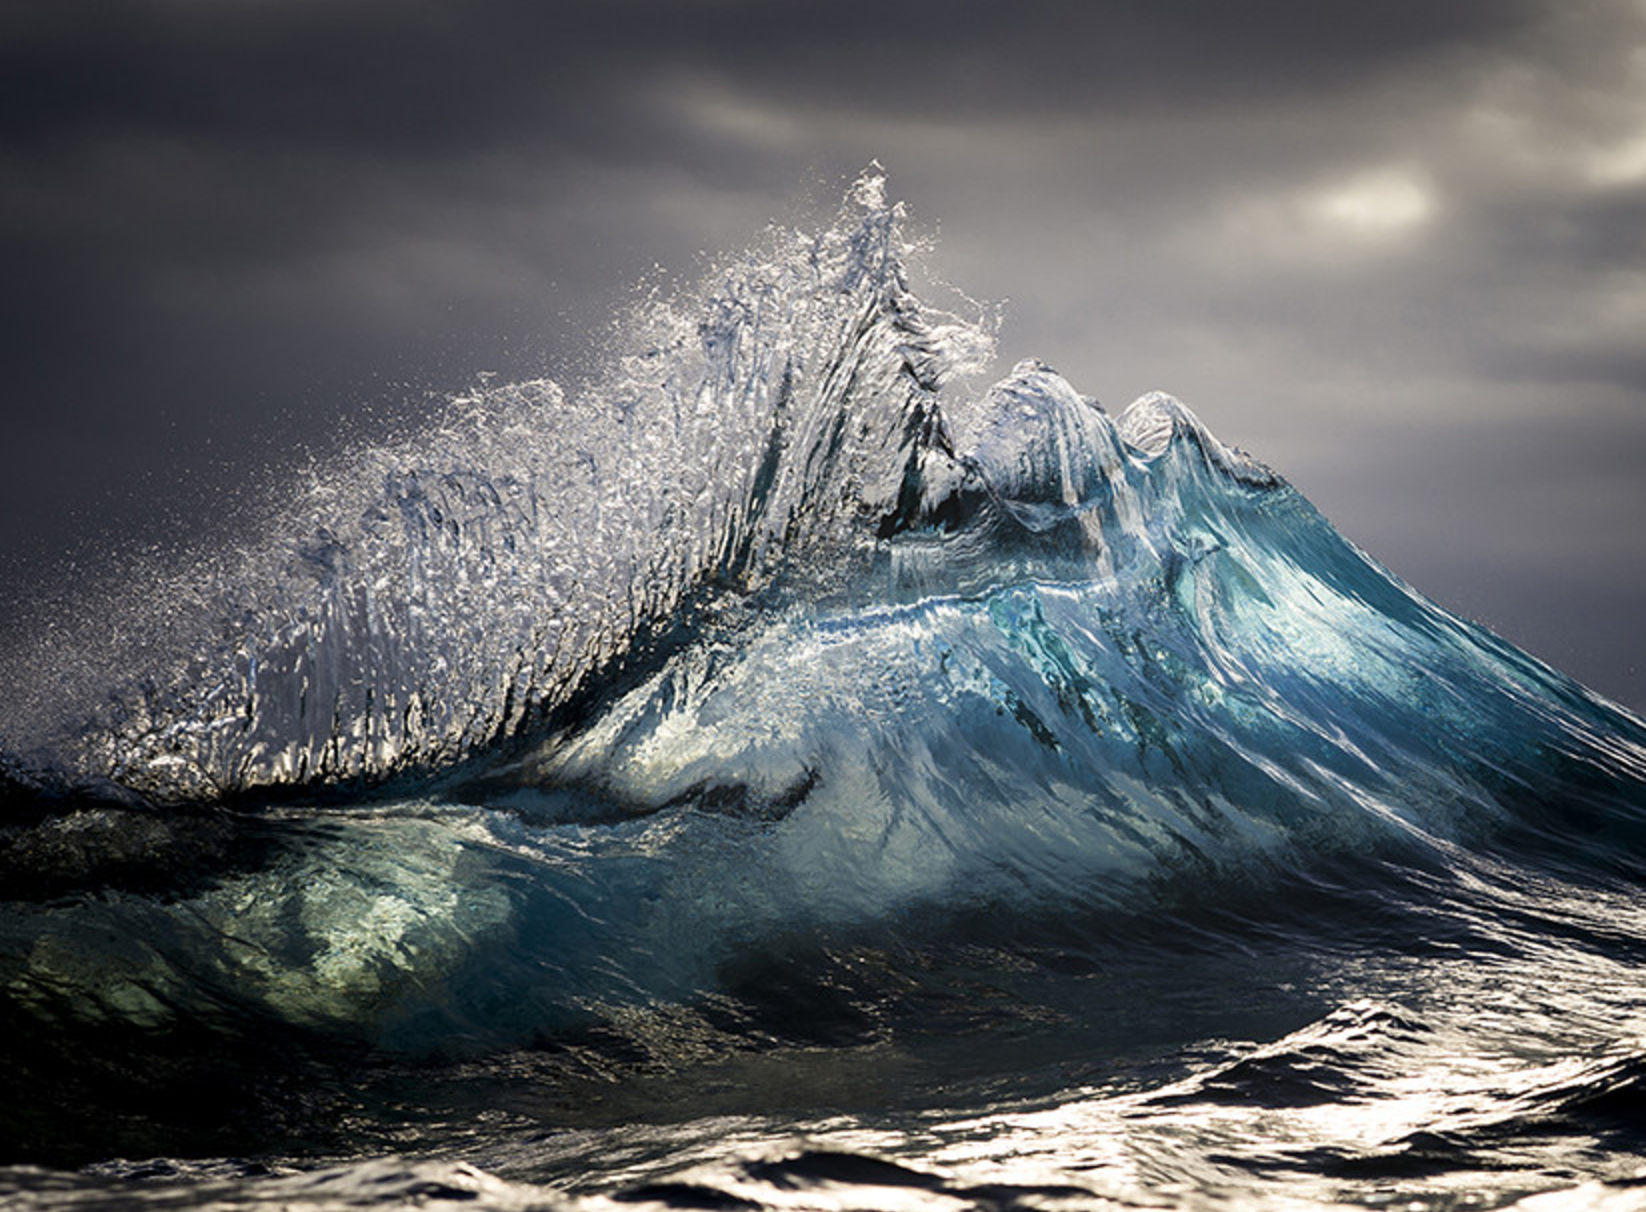 'Crystal' by Ray Collins